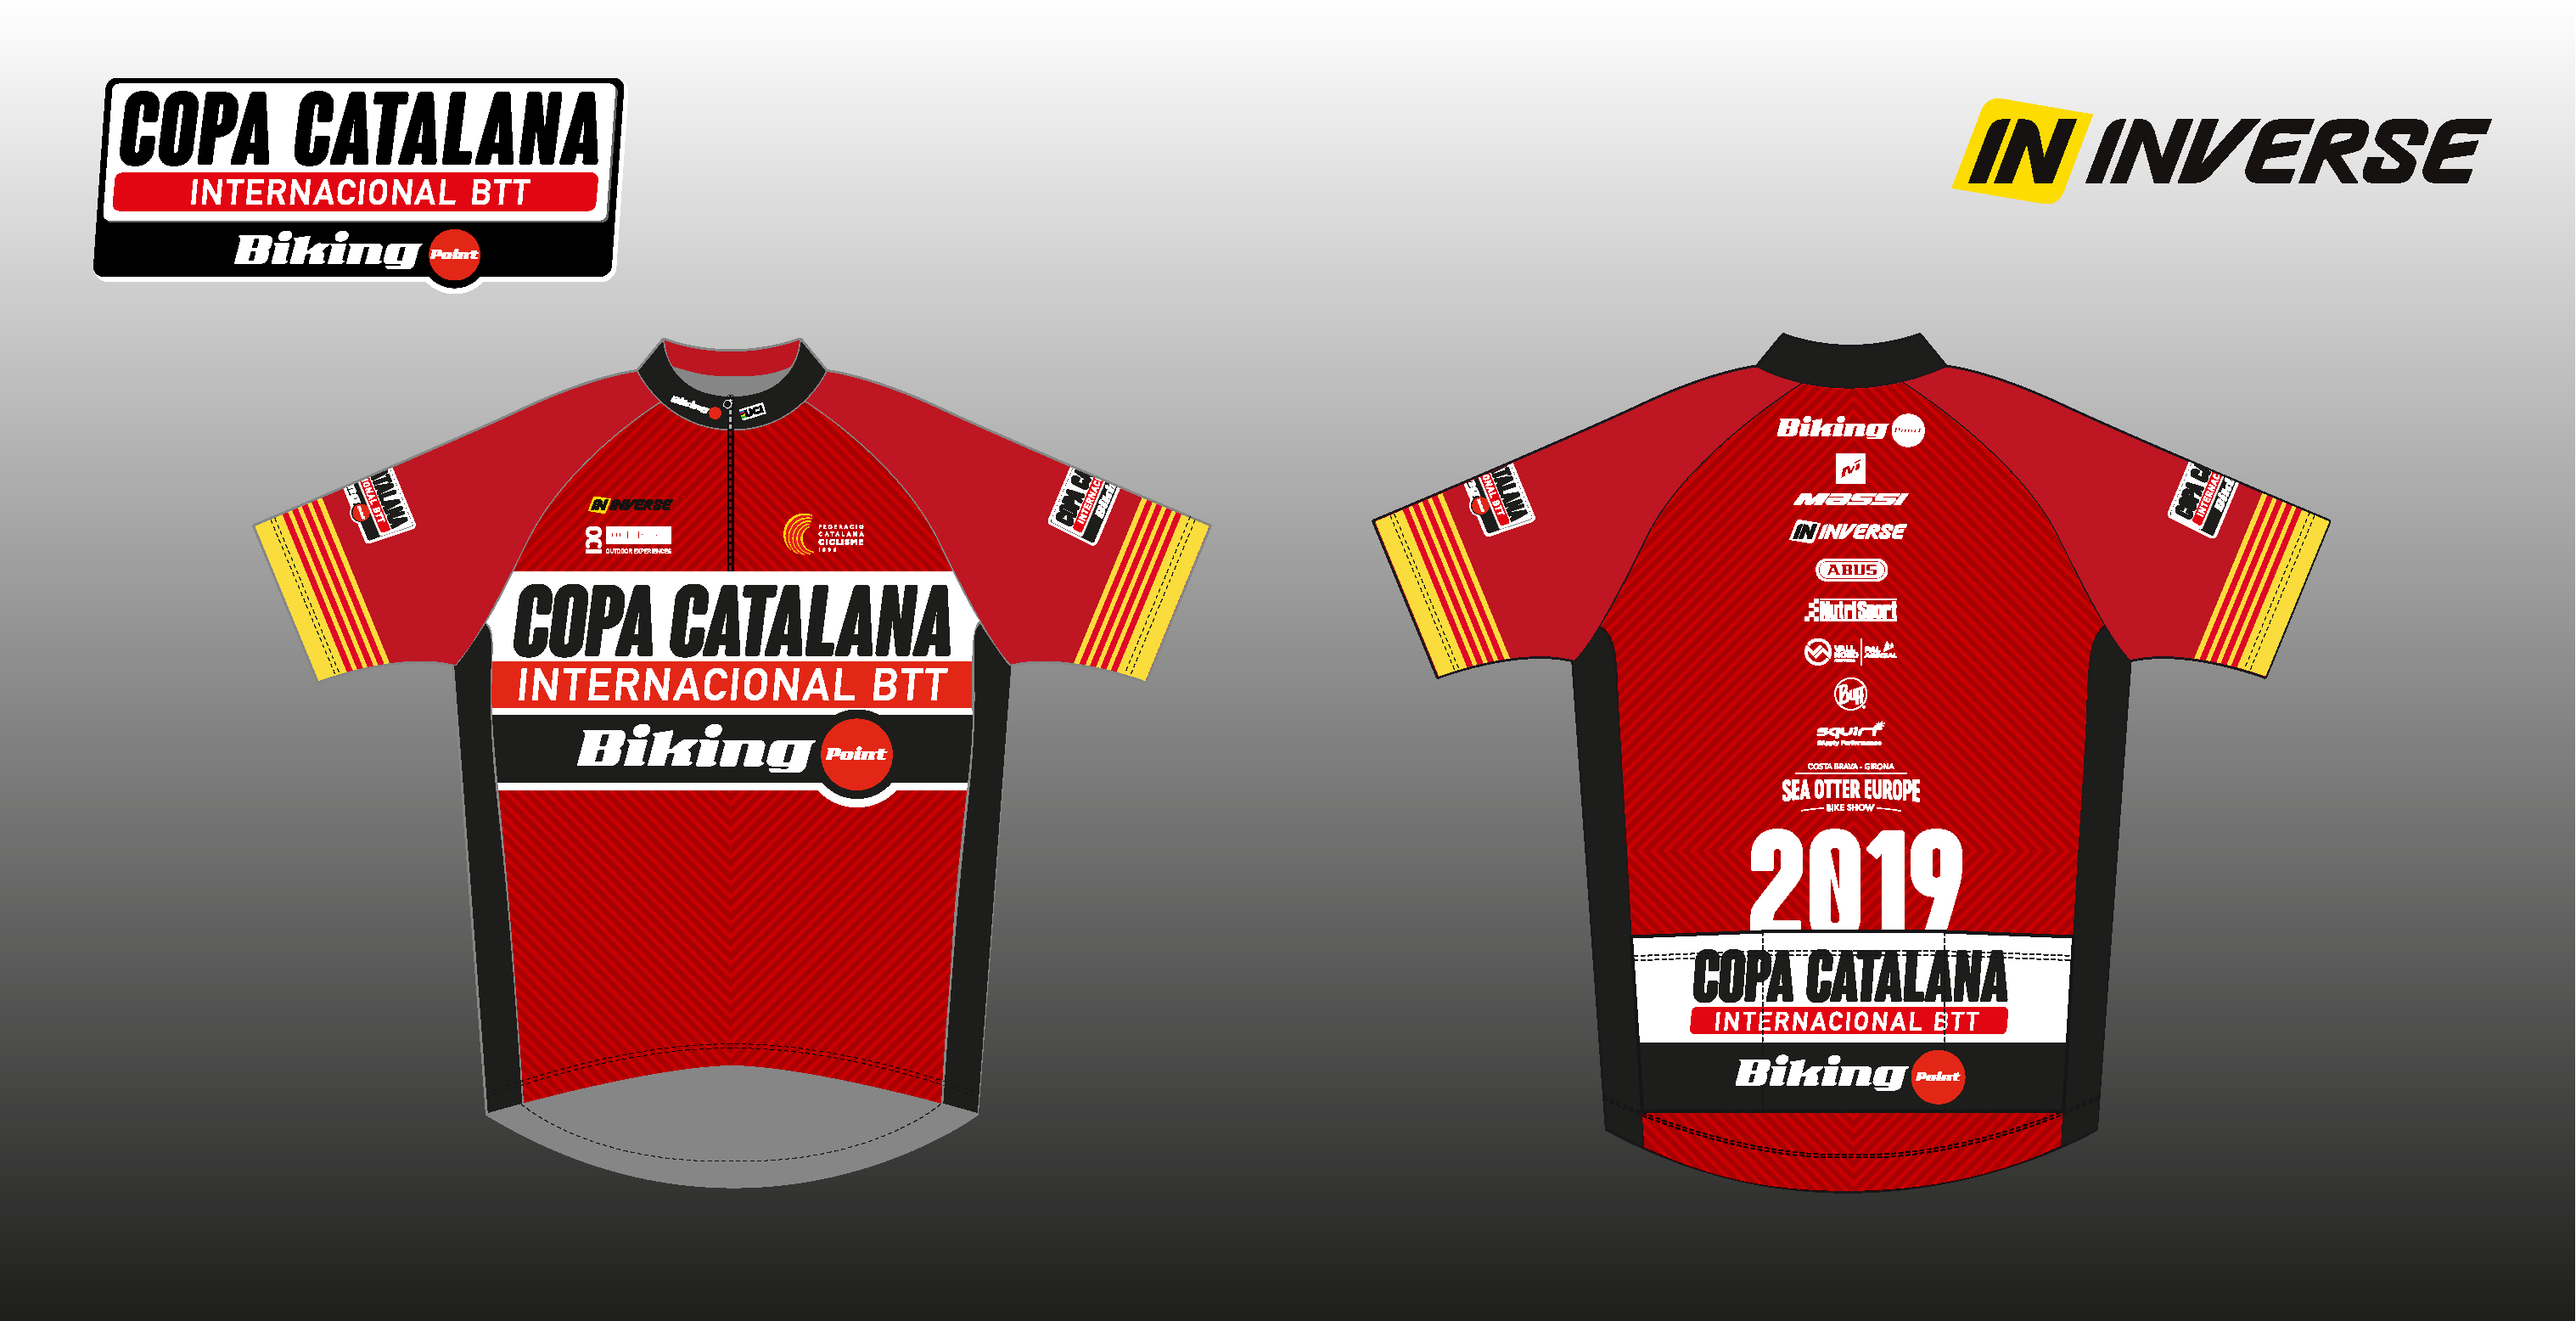 La Copa Catalana Internacional Biking Point i la Super Cup Massi presenten els mallots de líder 2019